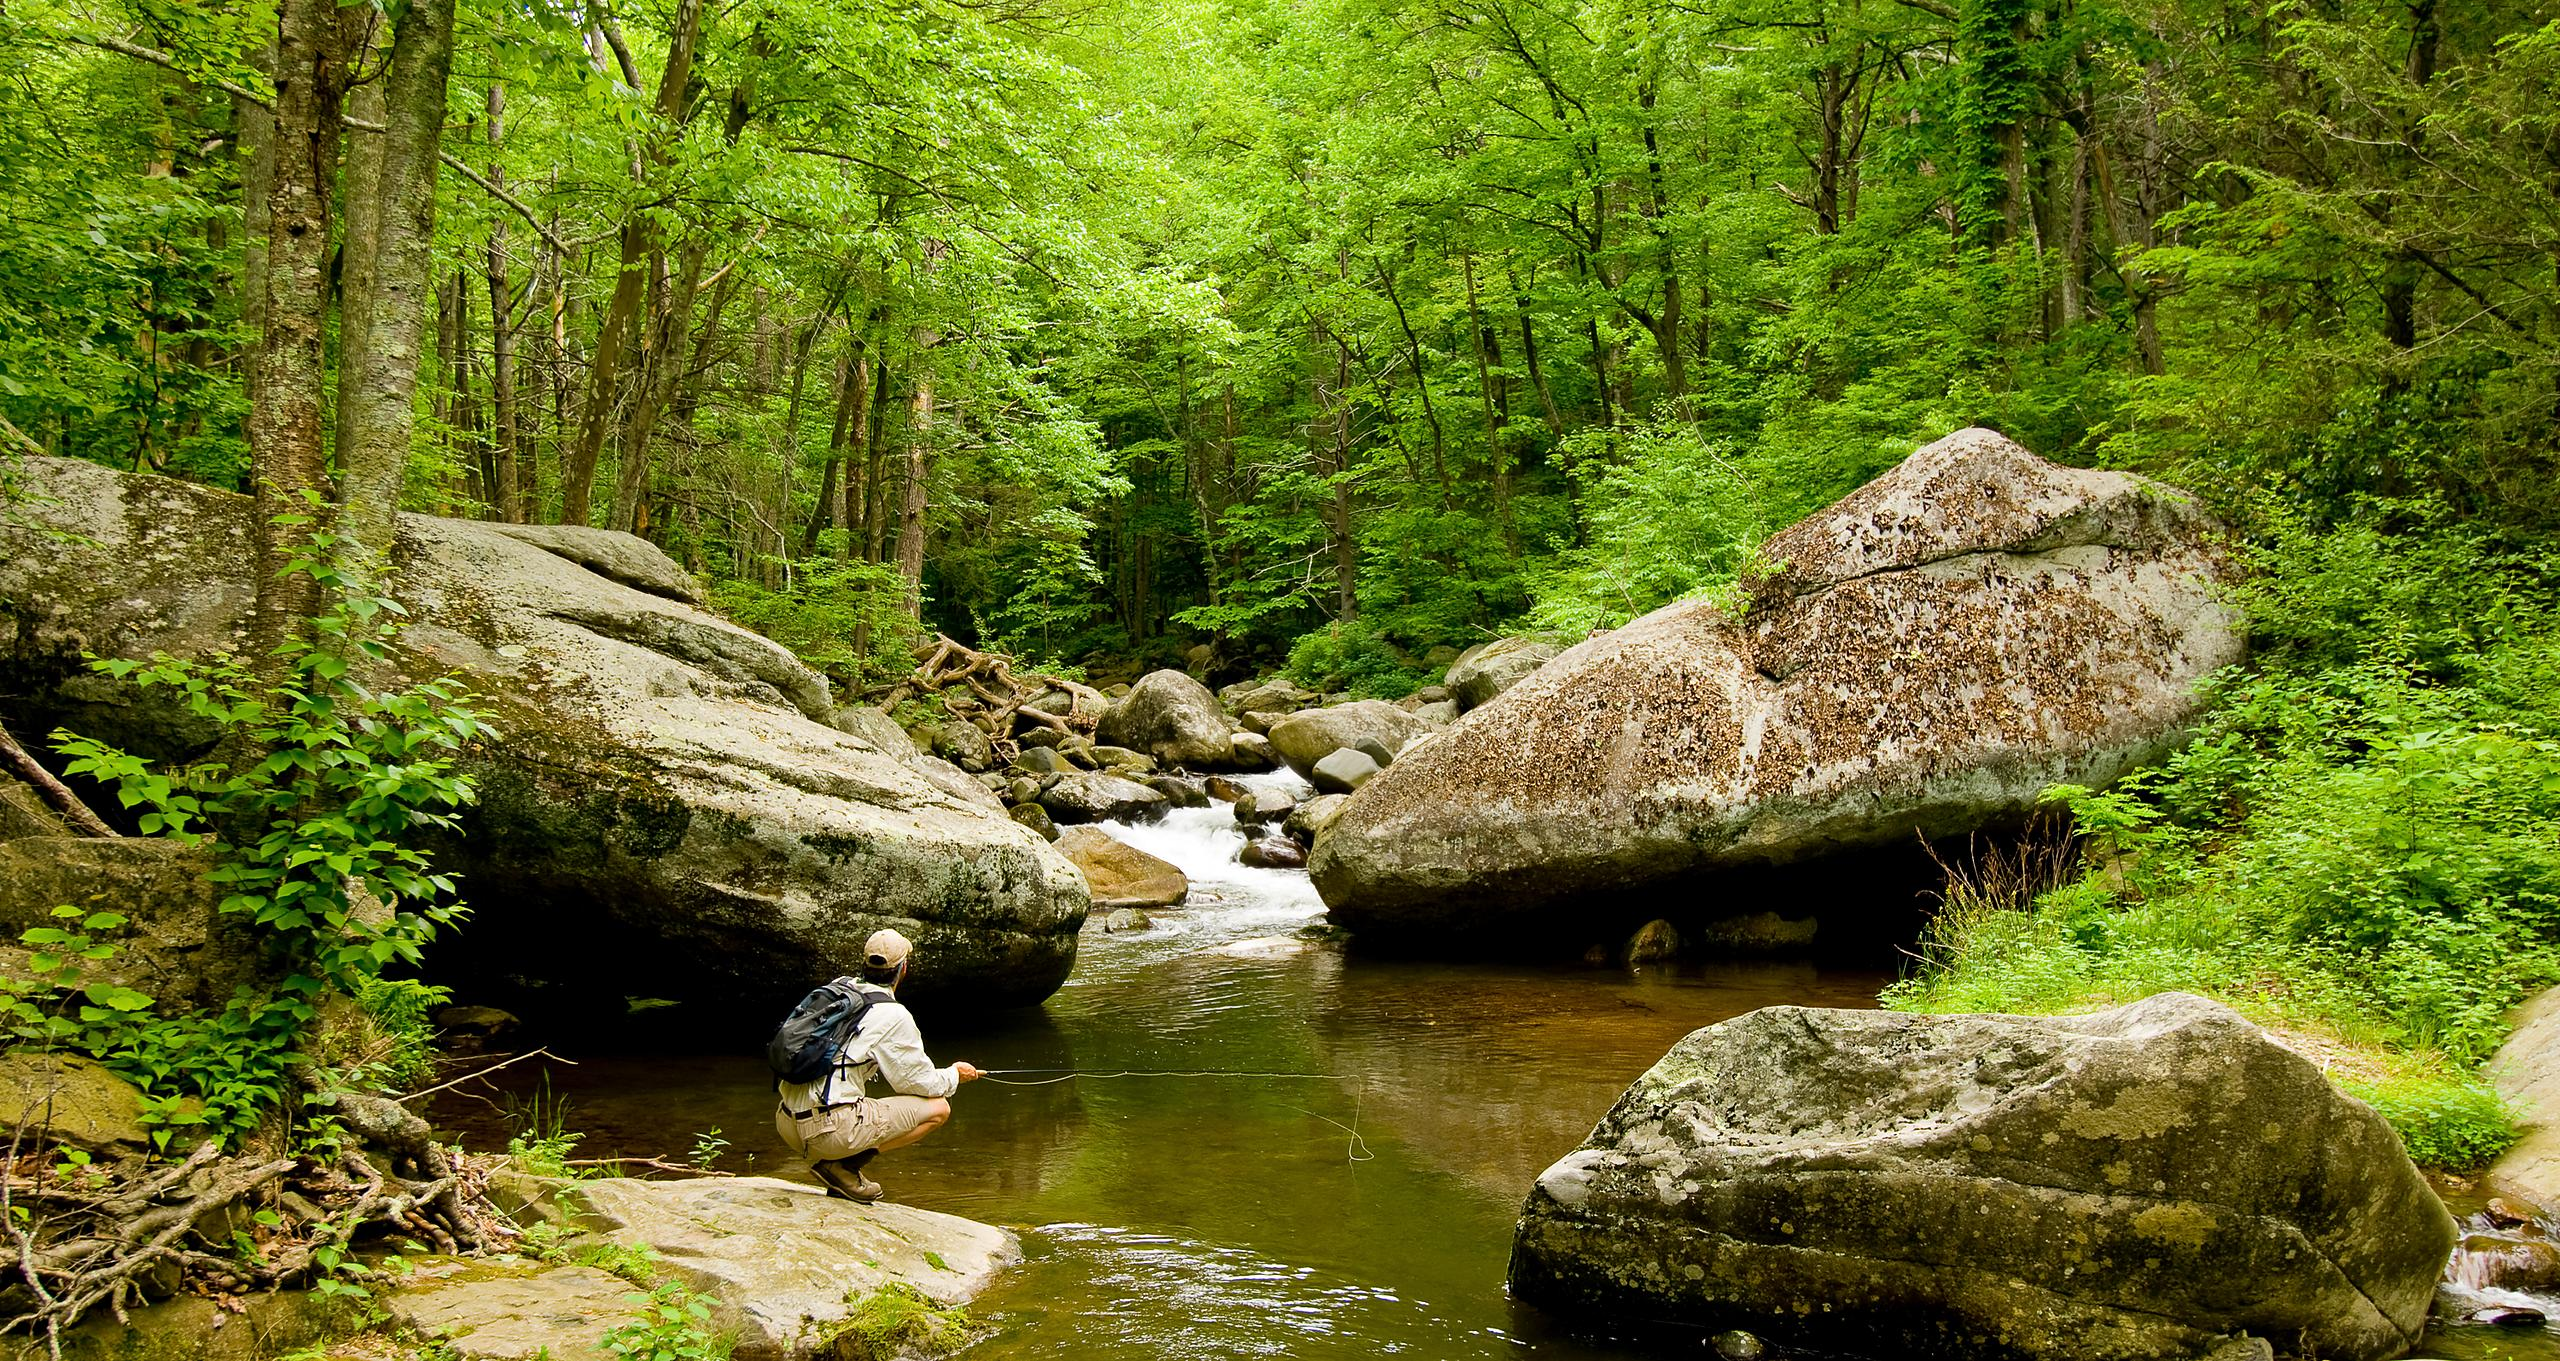 018-Eastern_Landscapes_D105106_BLUE_RIDGE_FLY_FISHING-36_Preview